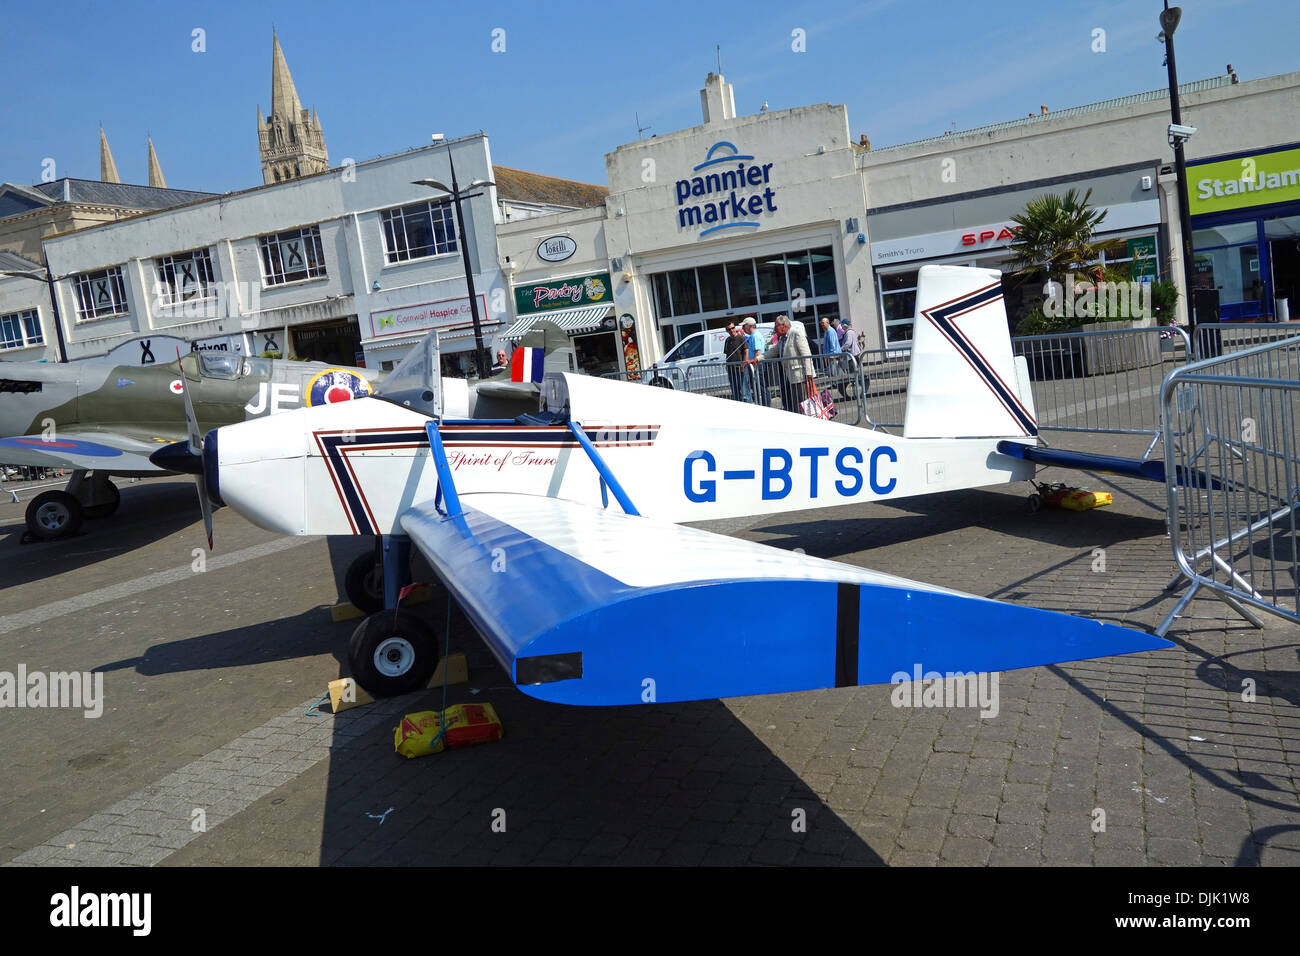 The ' spirit of truro ' a monoplane built 30 years ago by students of Truro school in Cornwall, UK - Stock Image